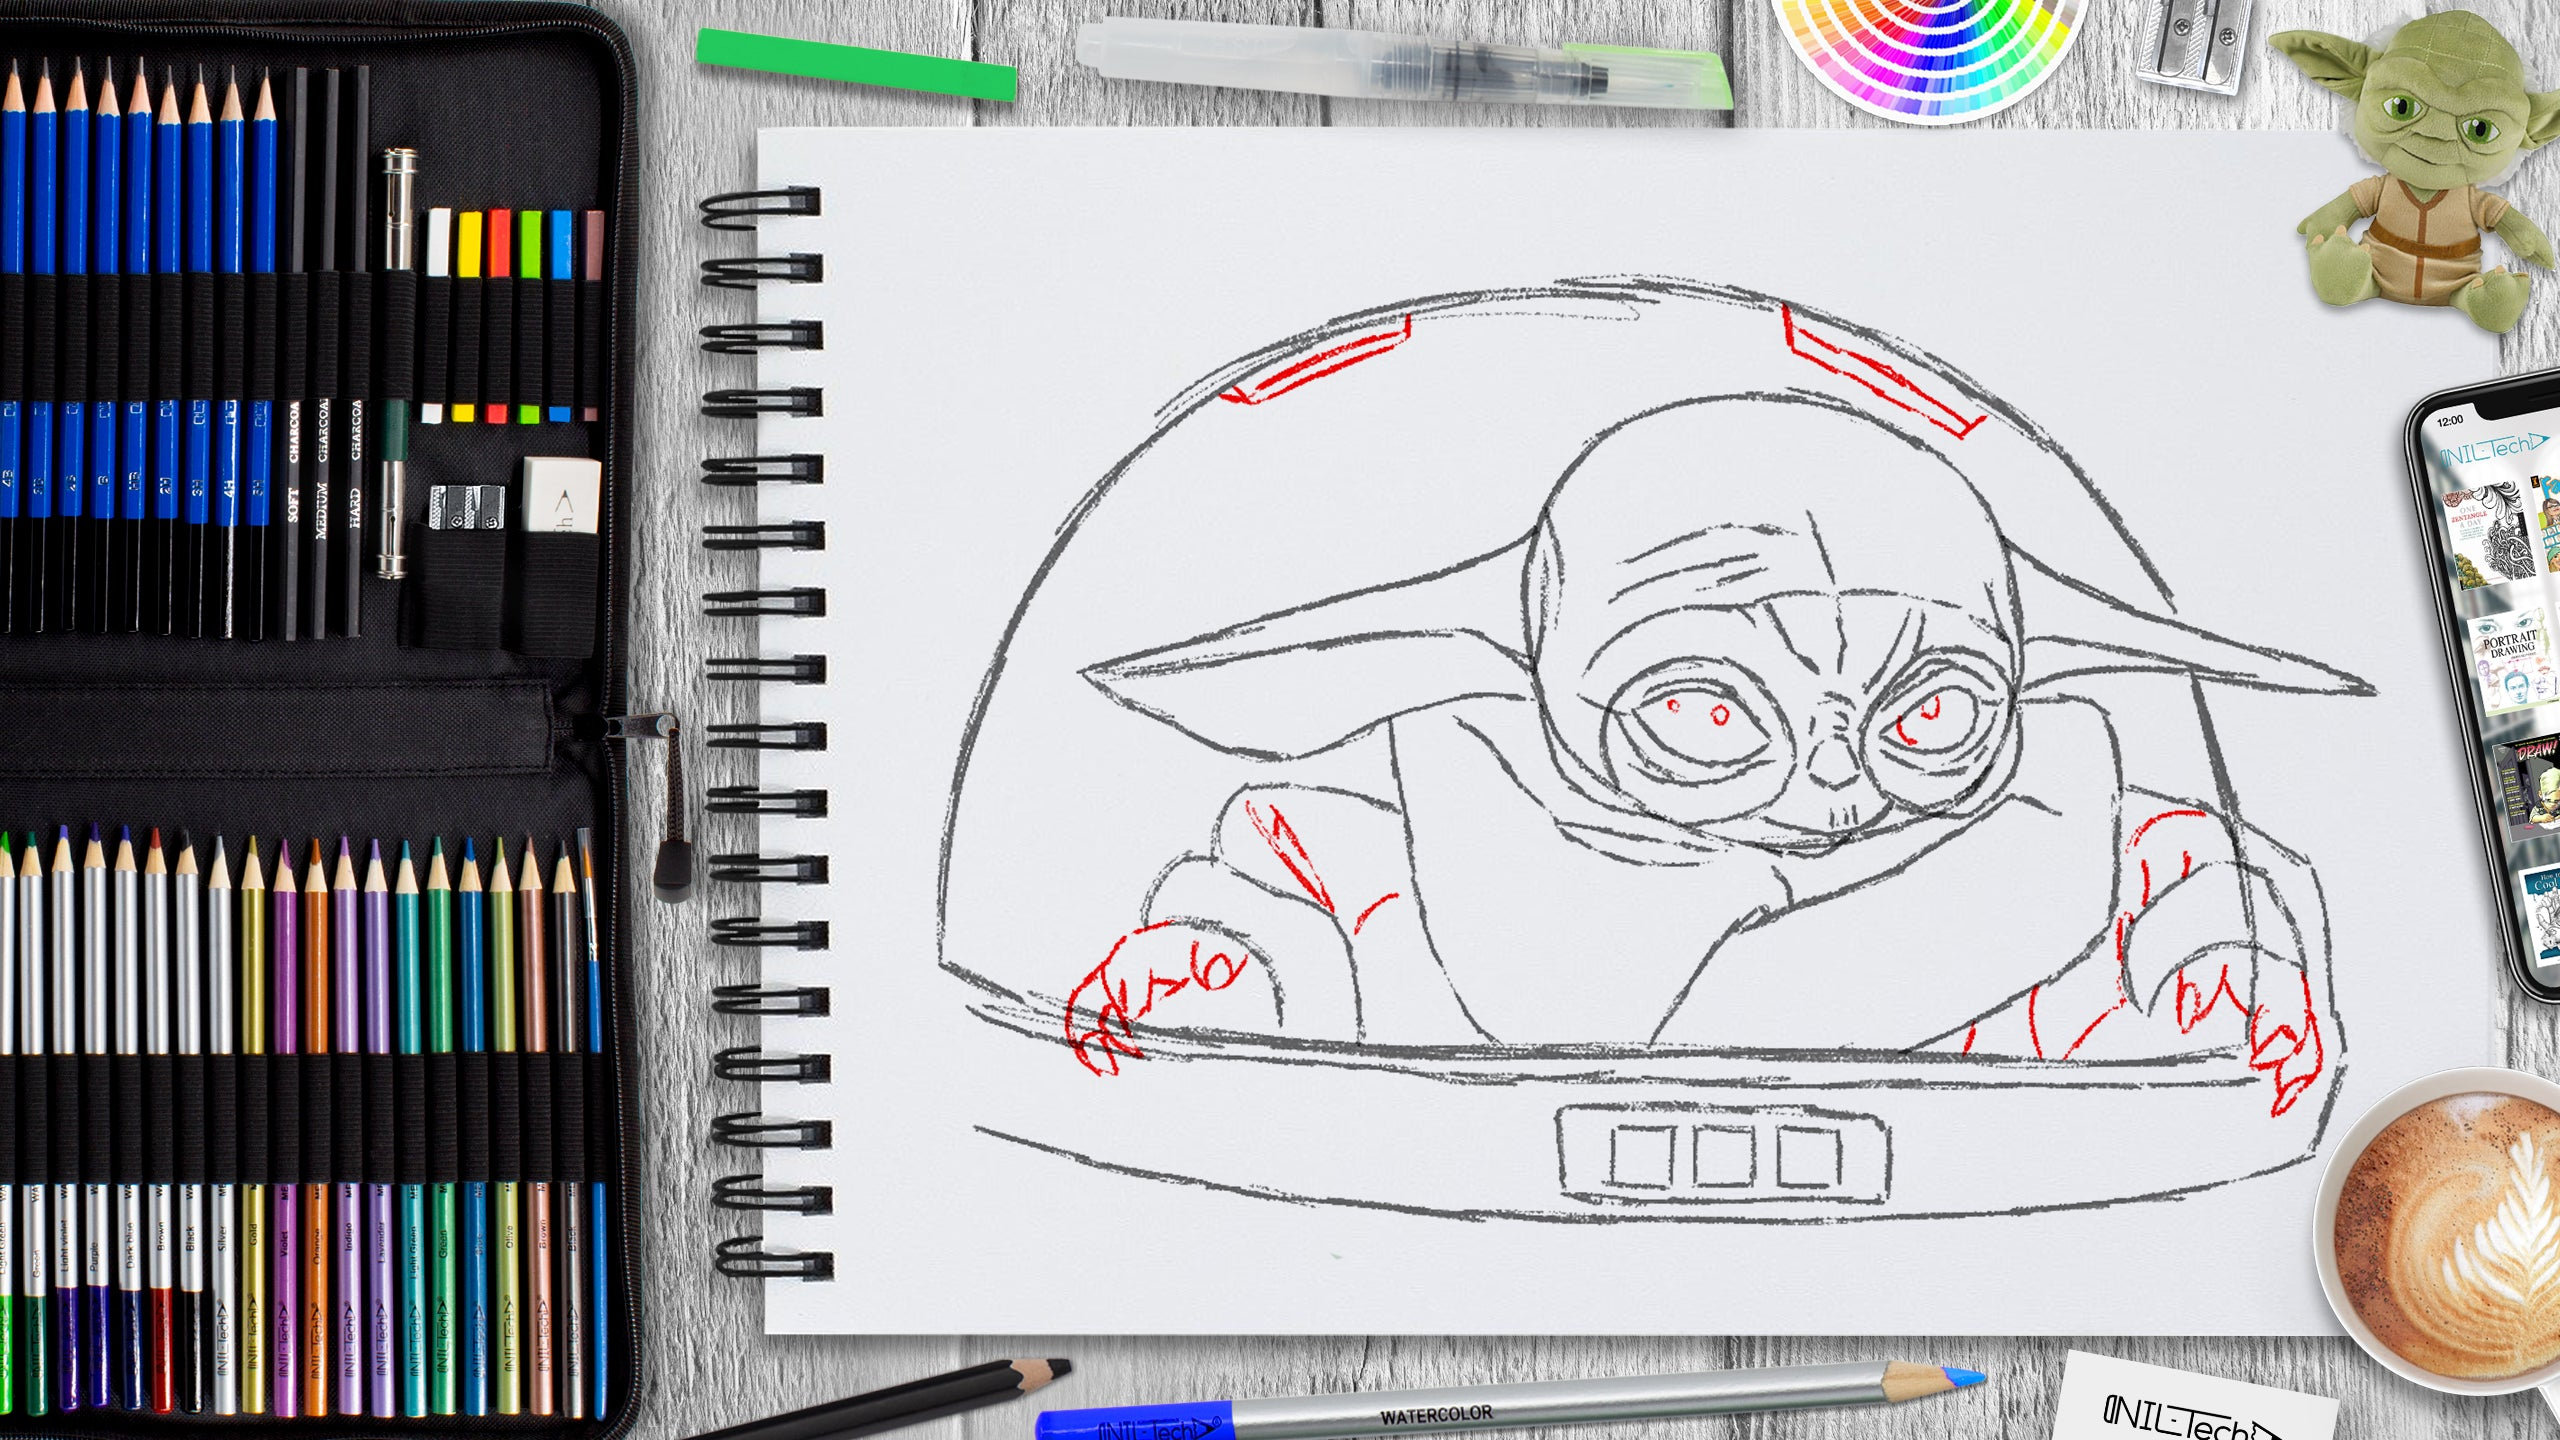 learn to draw baby yoda from mandalorian